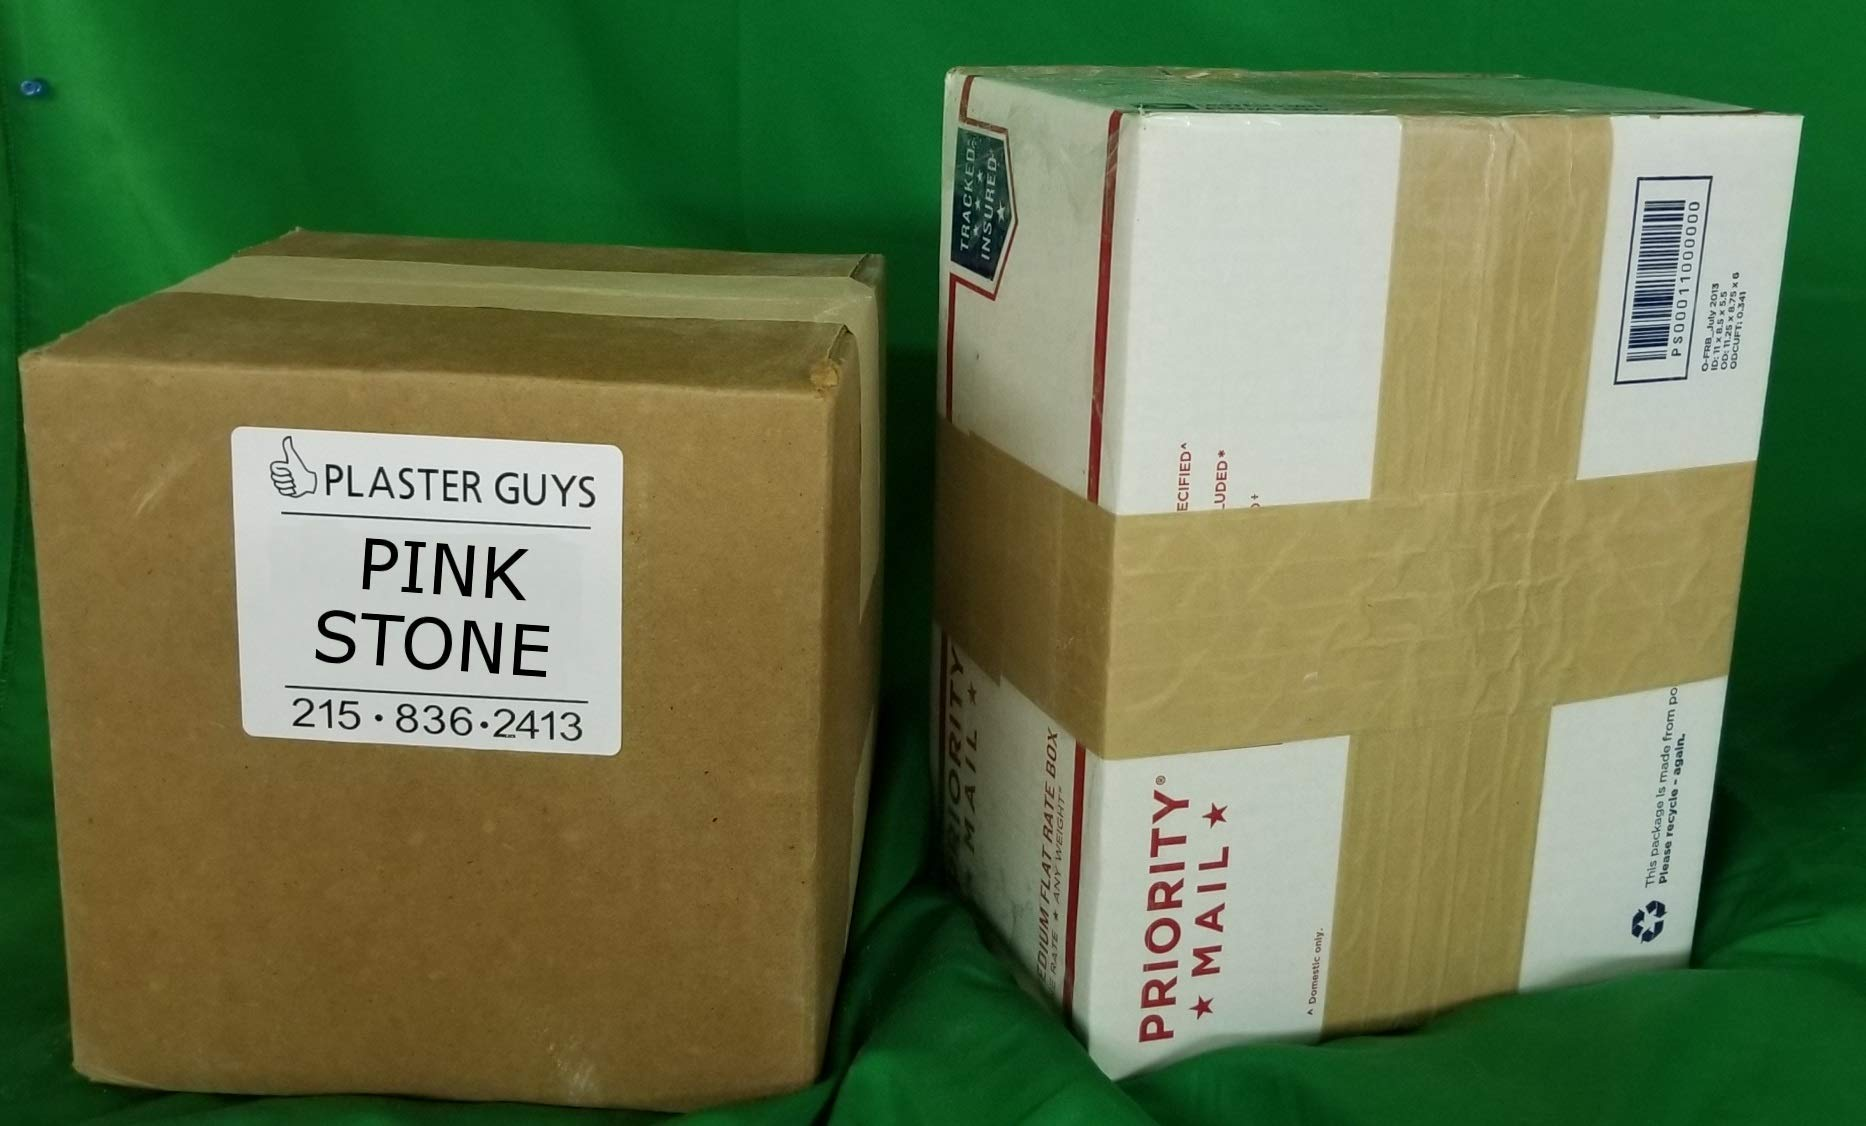 50 pounds - Pink Dental Lab Stone - Type III Gypsum with Free Fast Shipping! Made in The USA.